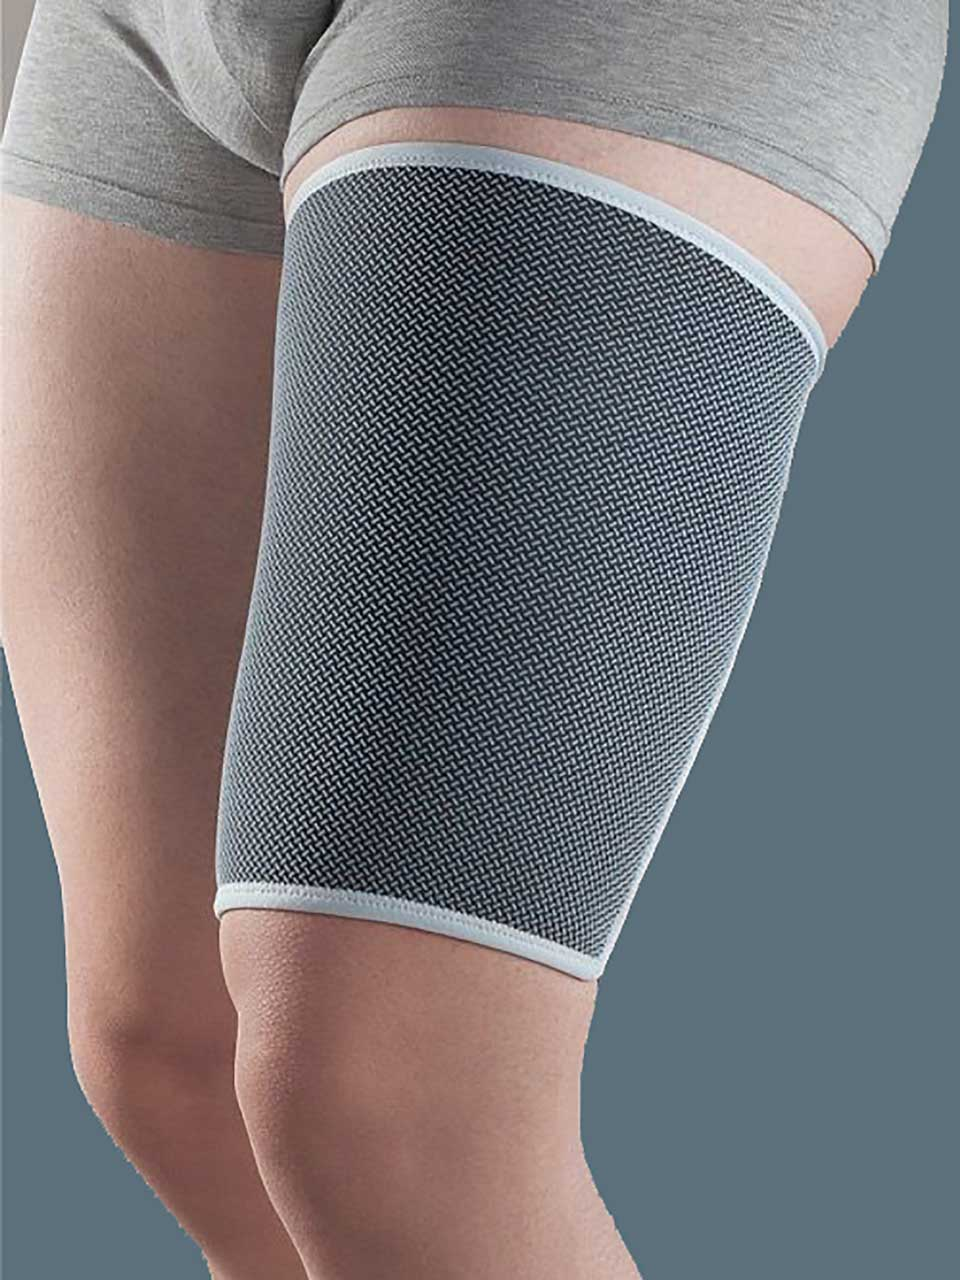 MIOSKILL 33 - Thigh support